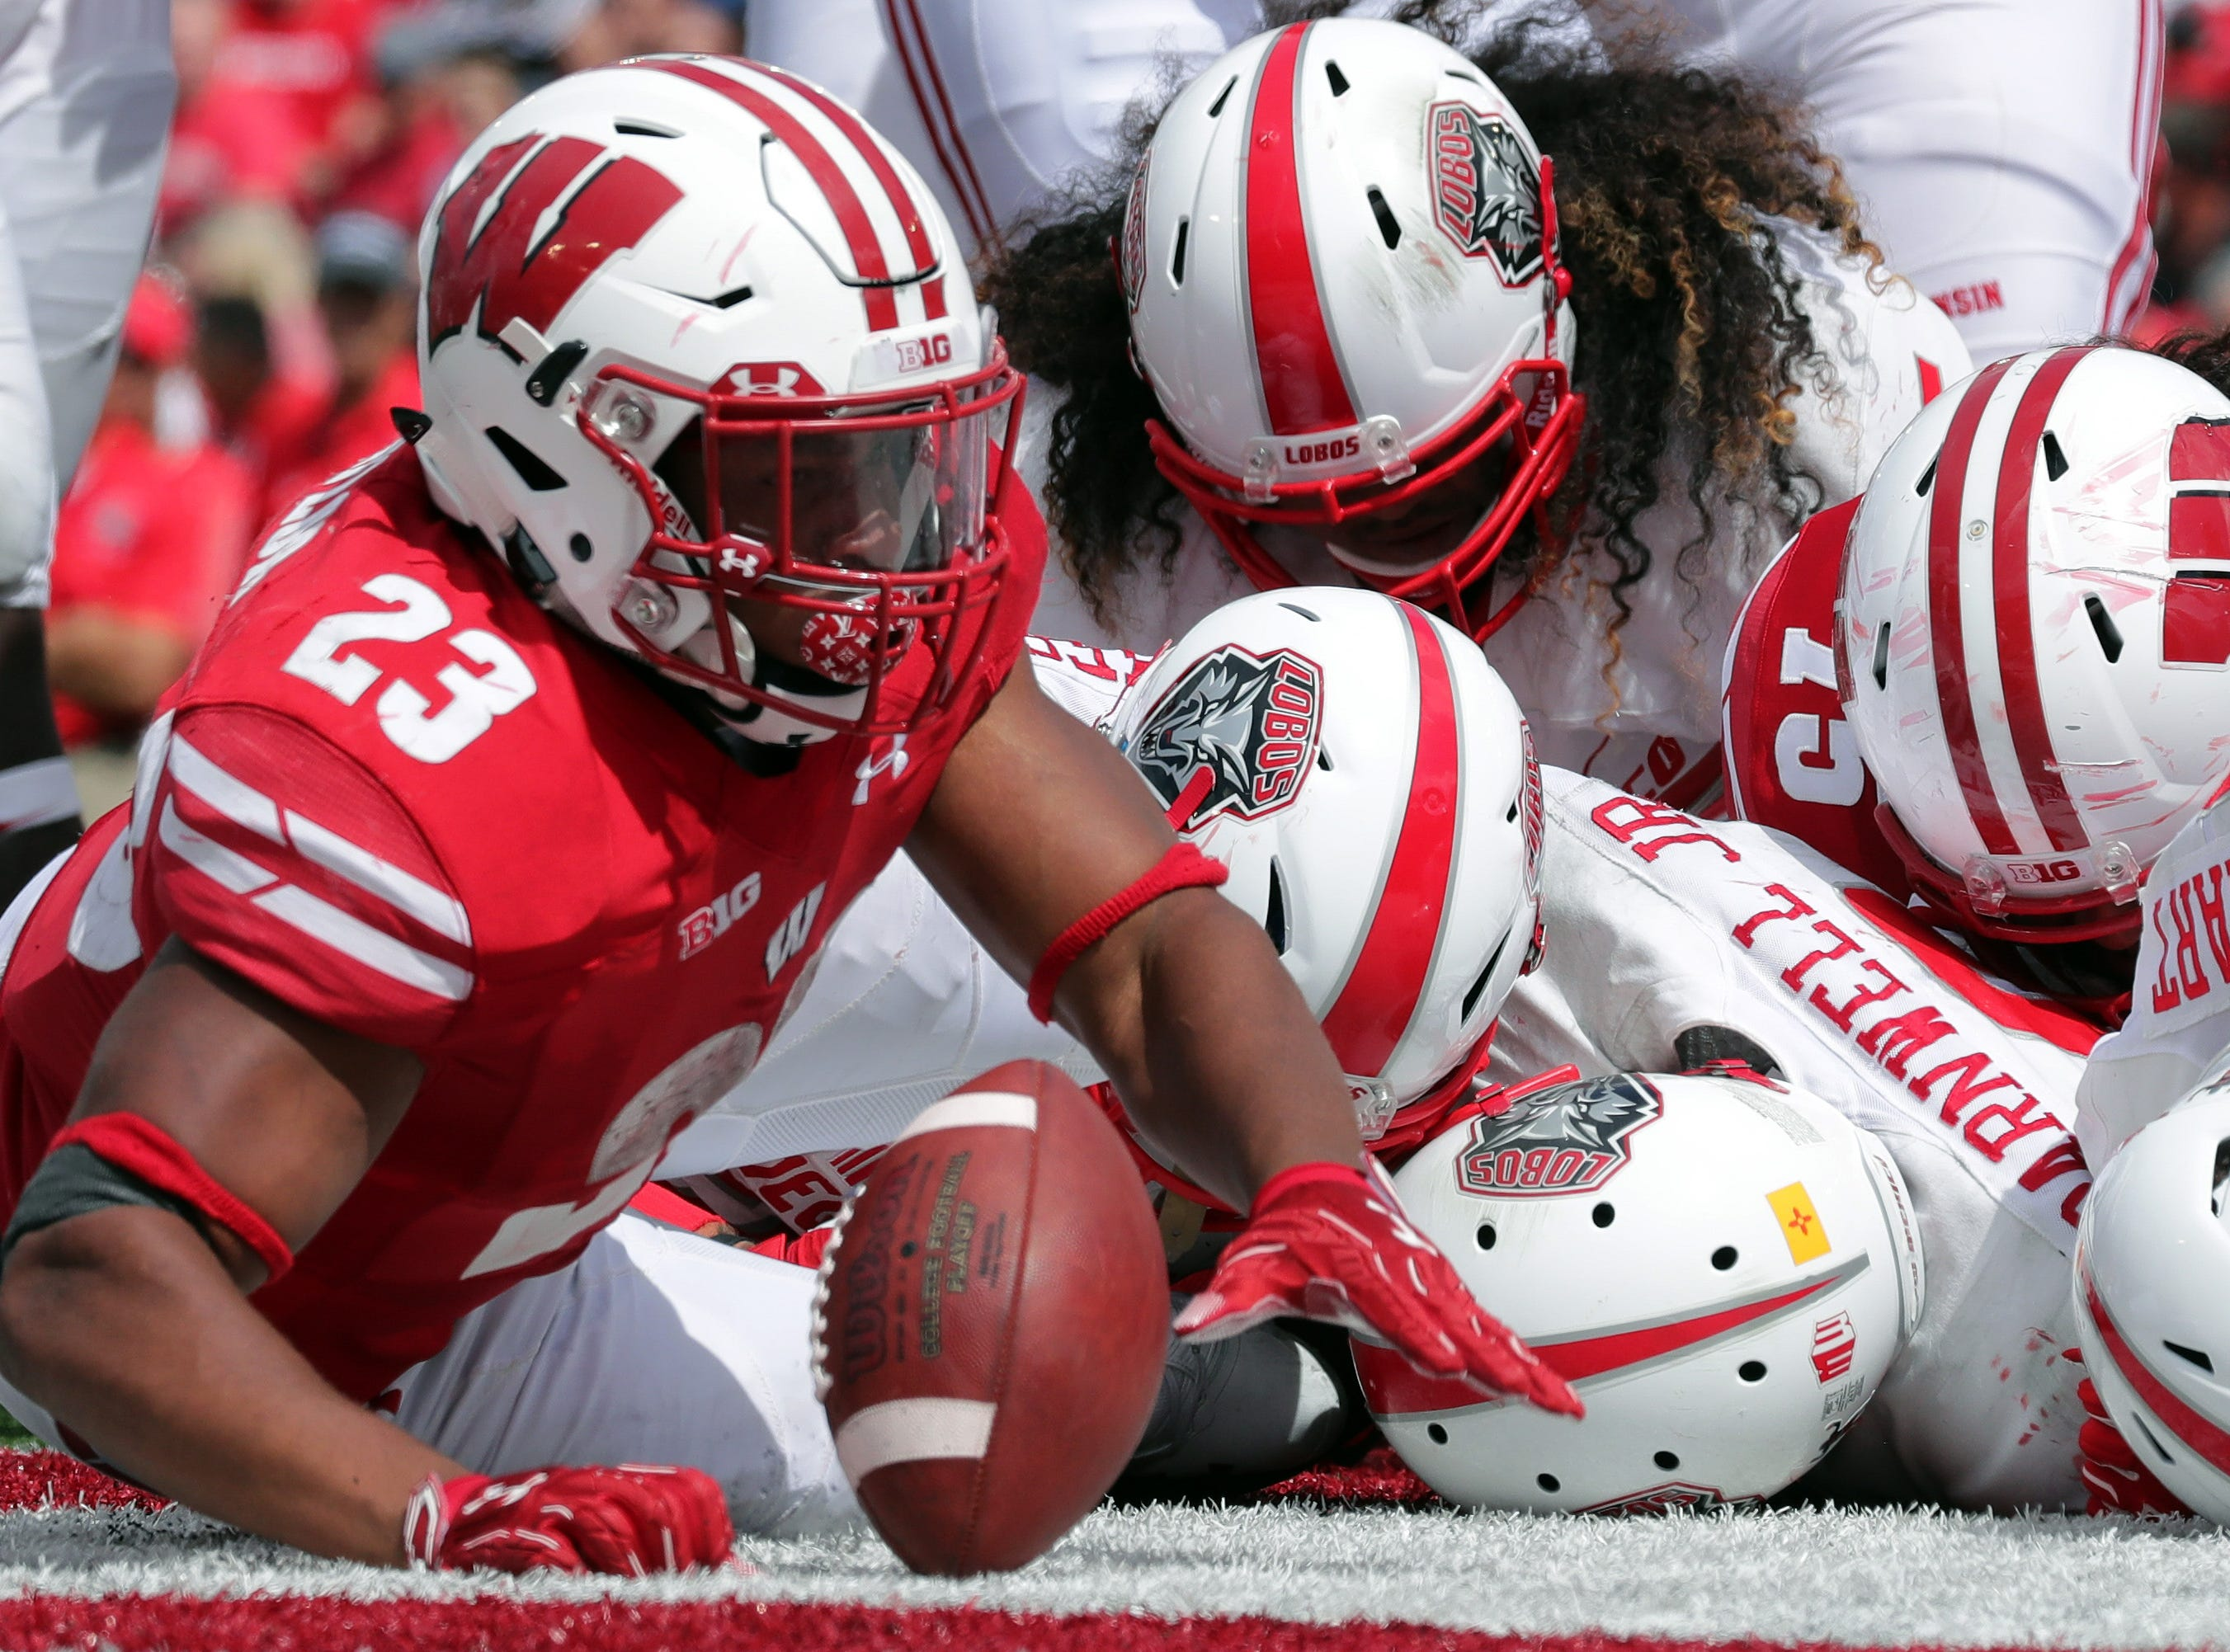 Wisconsin running back Jonathan Taylor (23) breaks his way into the end zone to score a touchdown on a 1-yard run during the fourth quarter at Camp Randall Stadium.